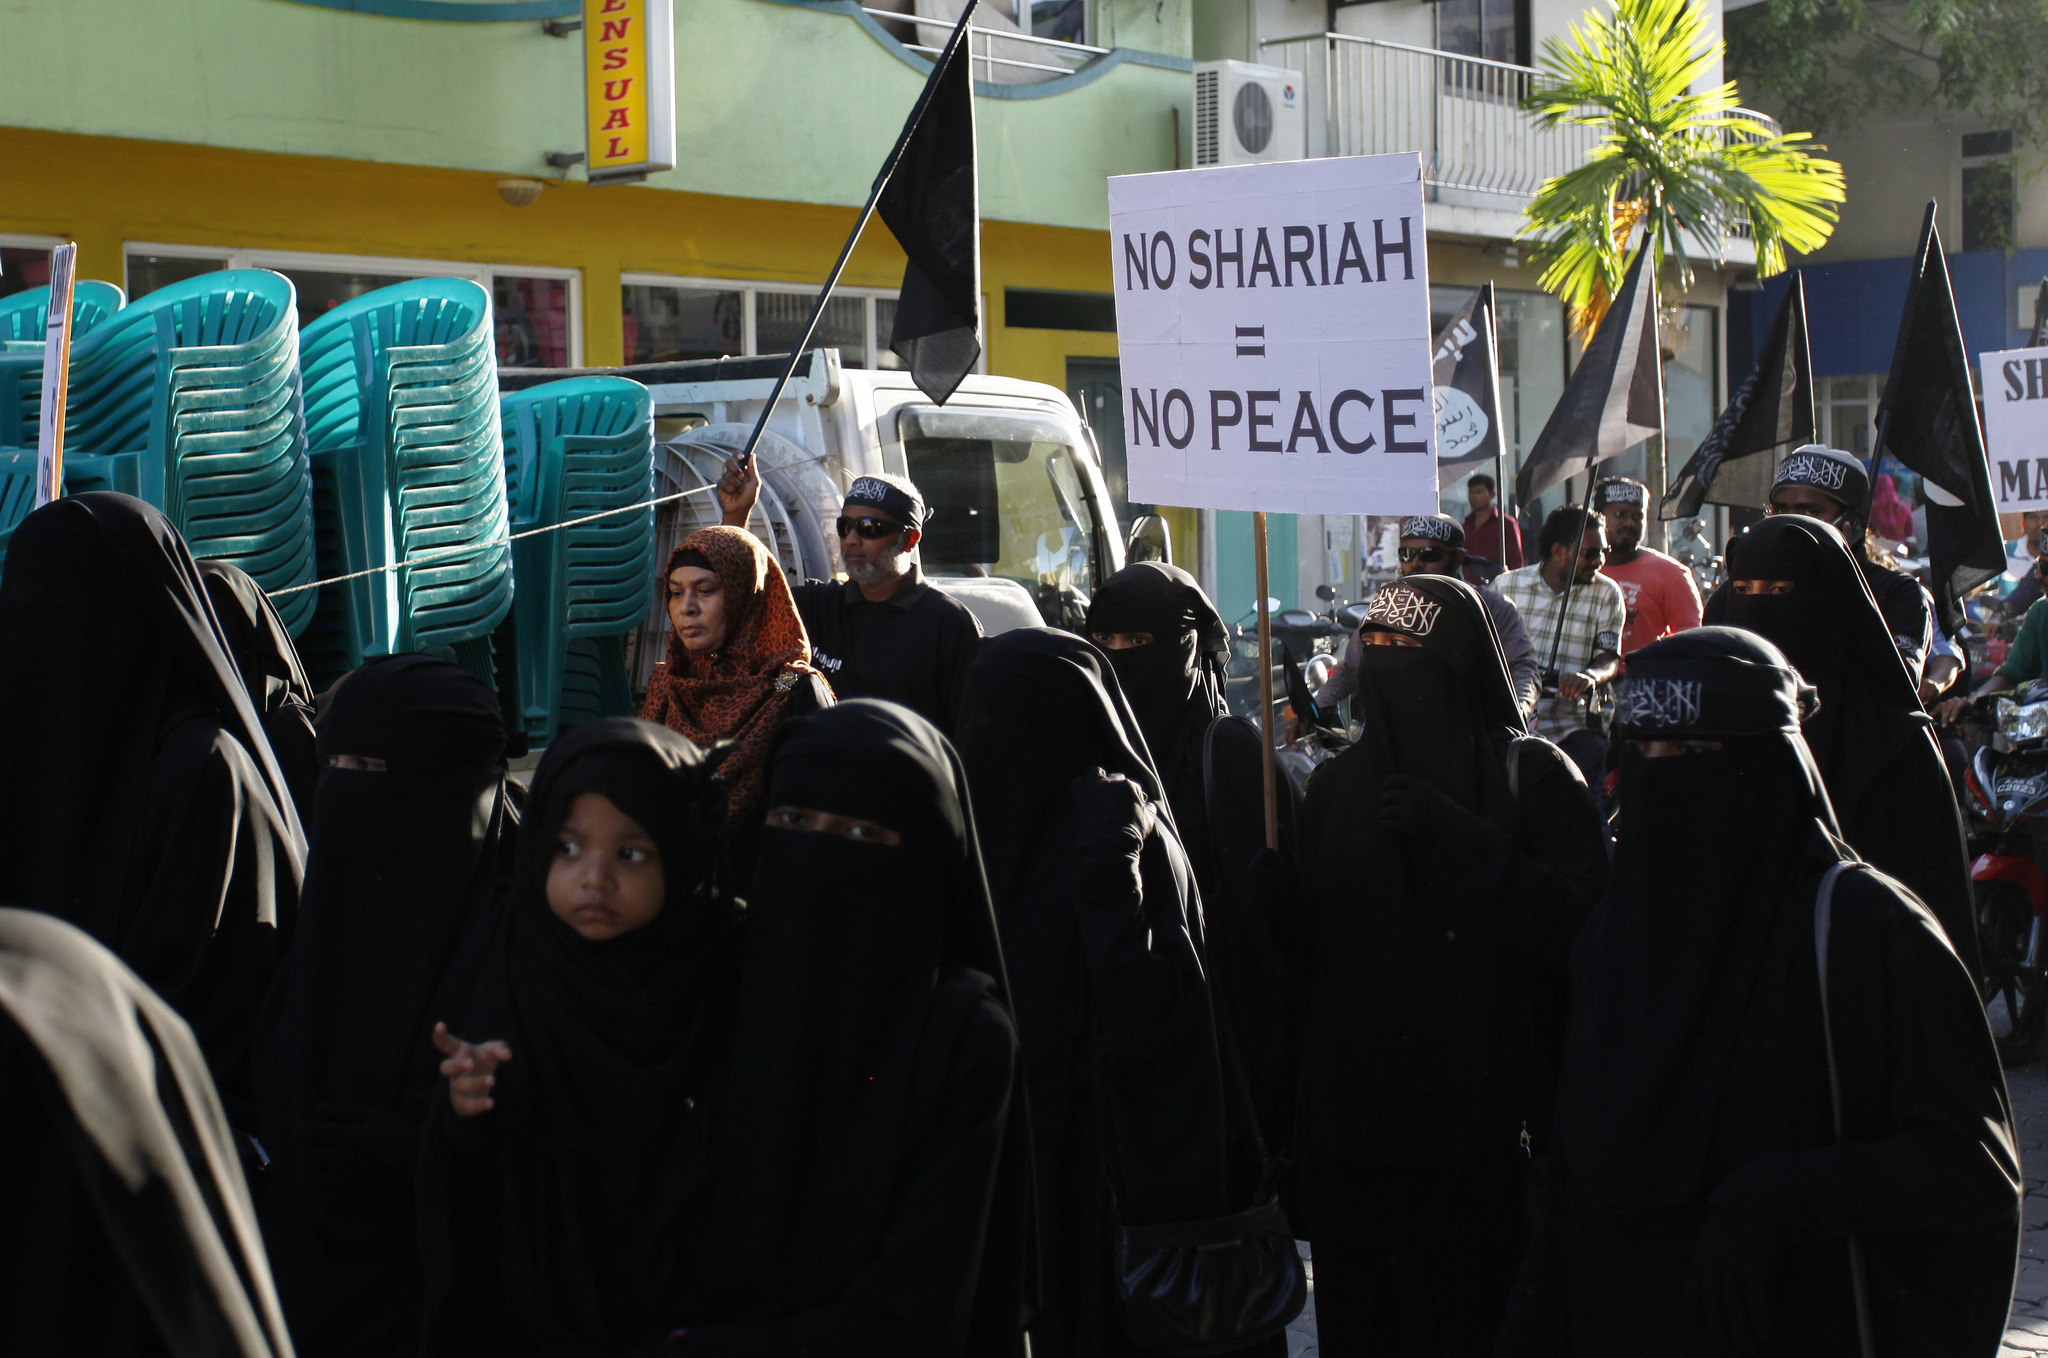 Women in the Maldives march in support of Sharia. By Dying Regime.